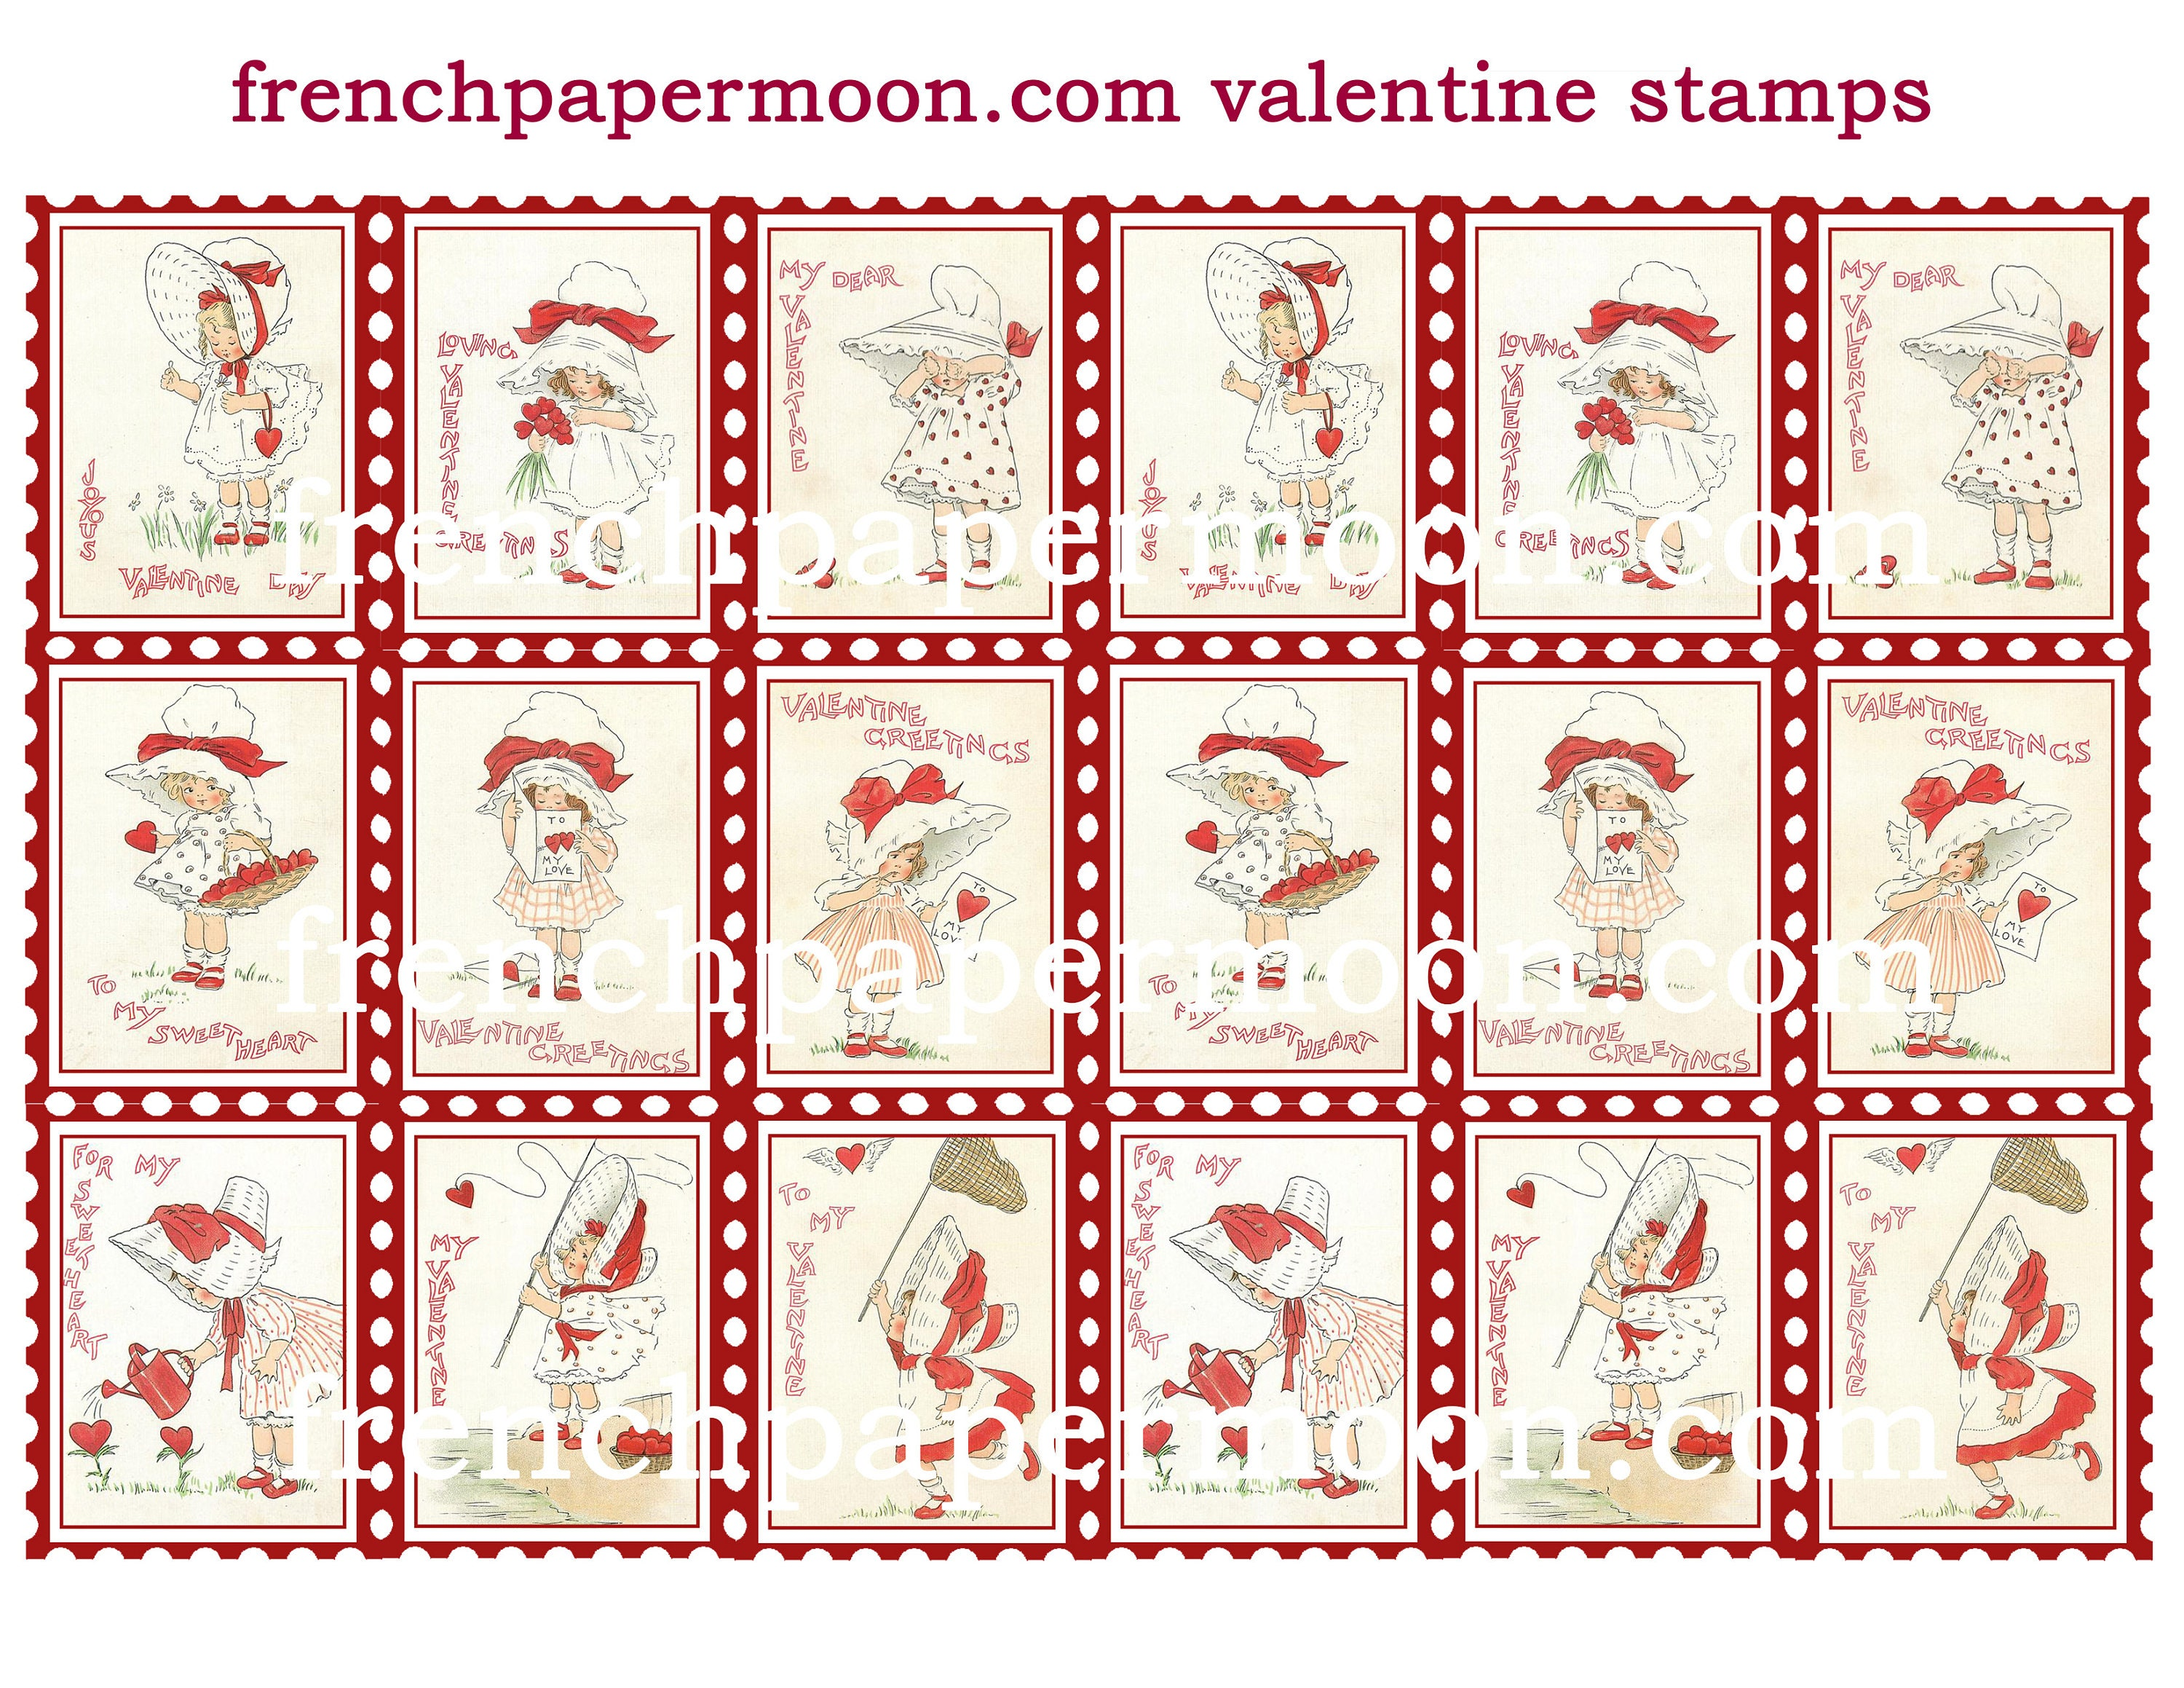 graphic relating to Printable Postage Stamps named Cute Valentine Printable ATC postal stamp collage sheets